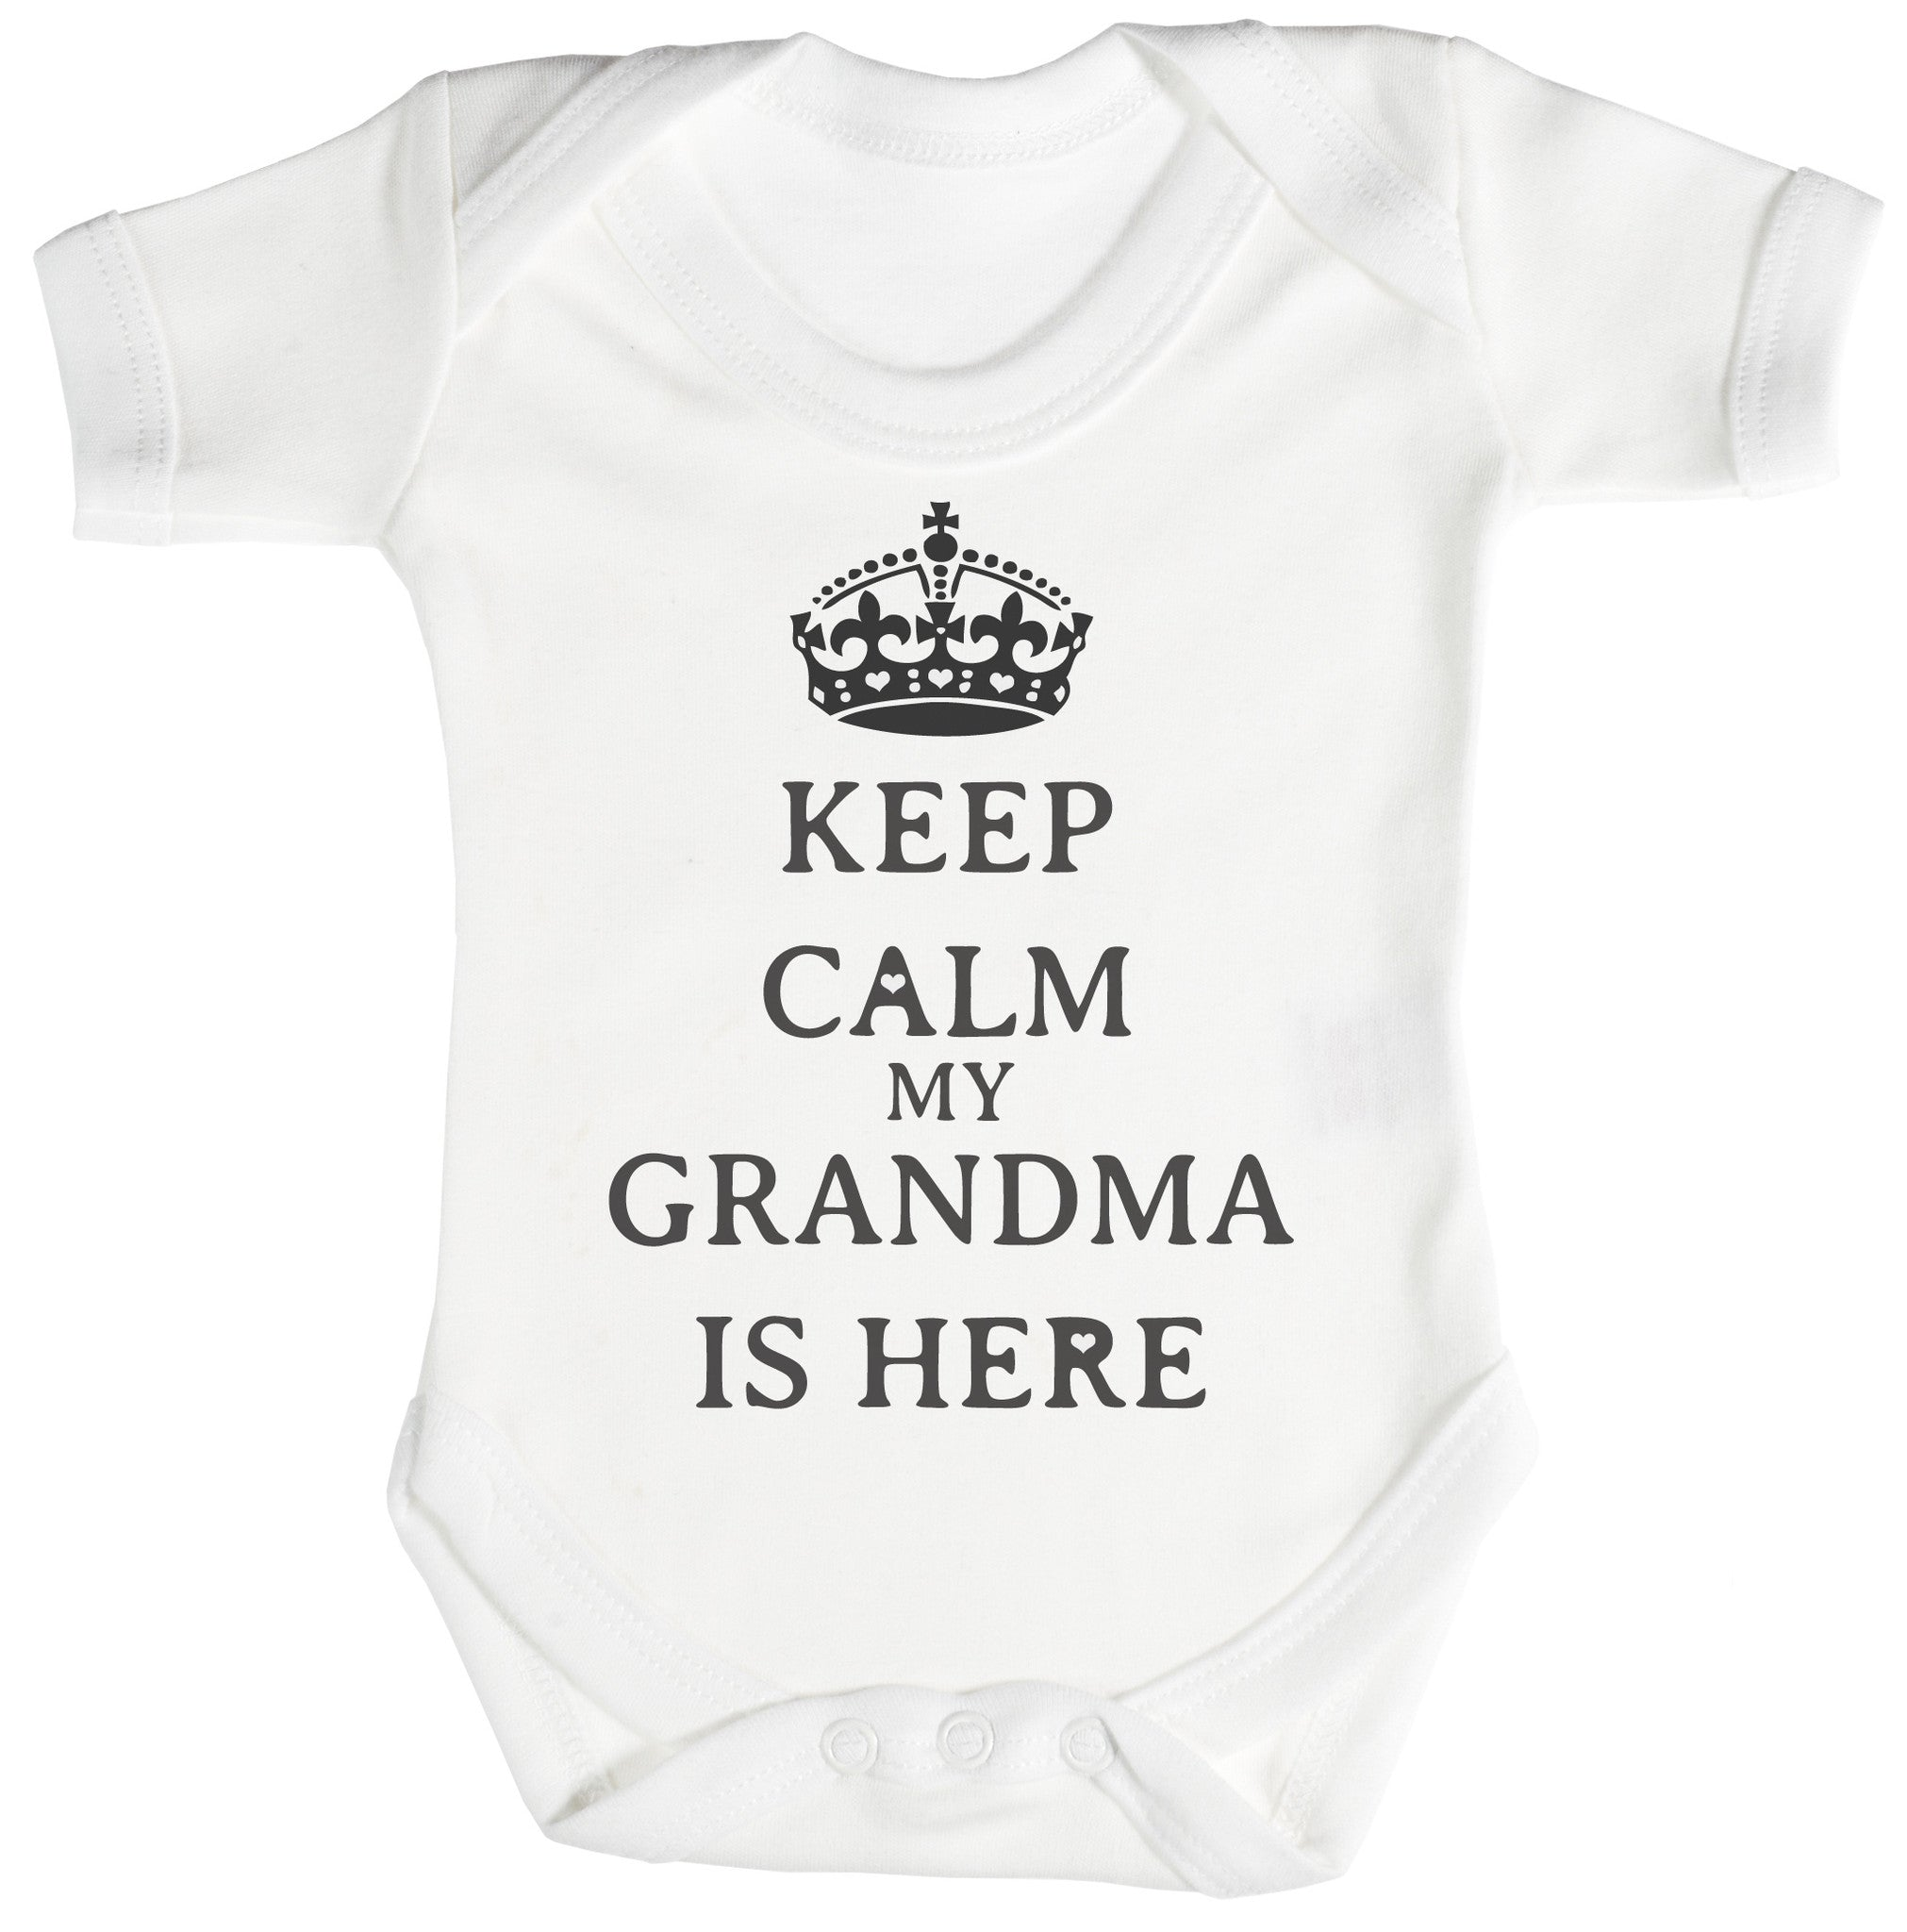 Calm Grandma is Here Baby Bodysuit / Babygrow